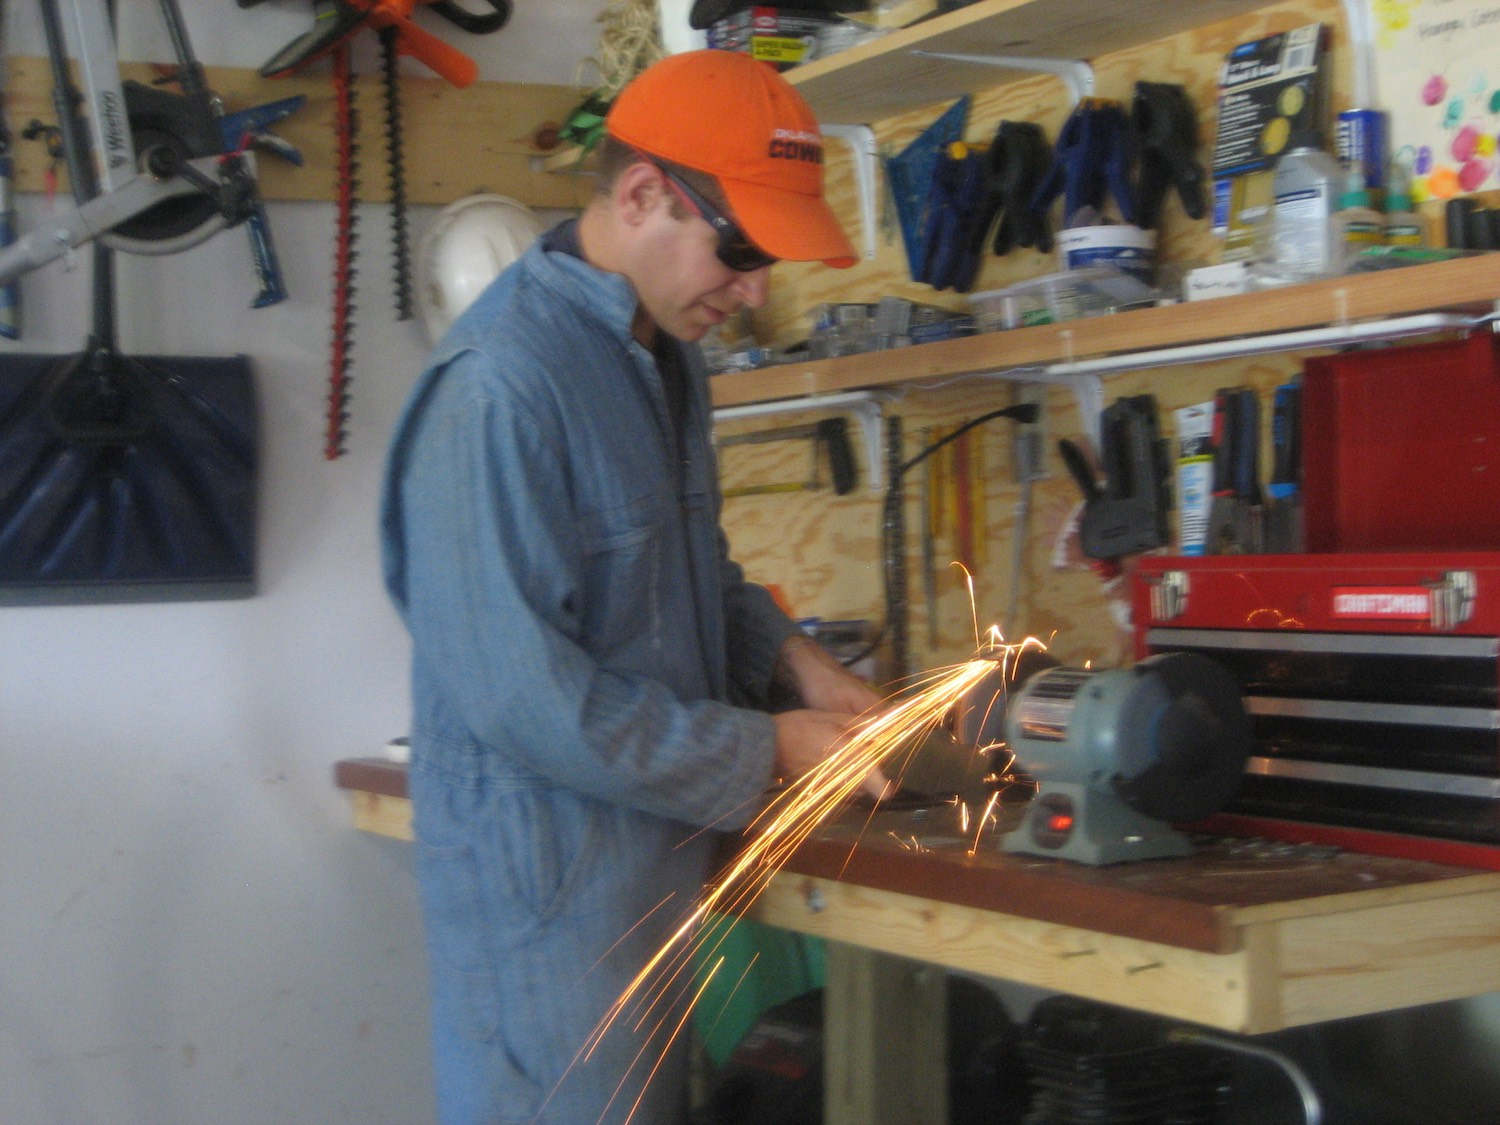 Image: My son took this picture of me sharpening a lawnmower blade. He used a night-time mode which,...